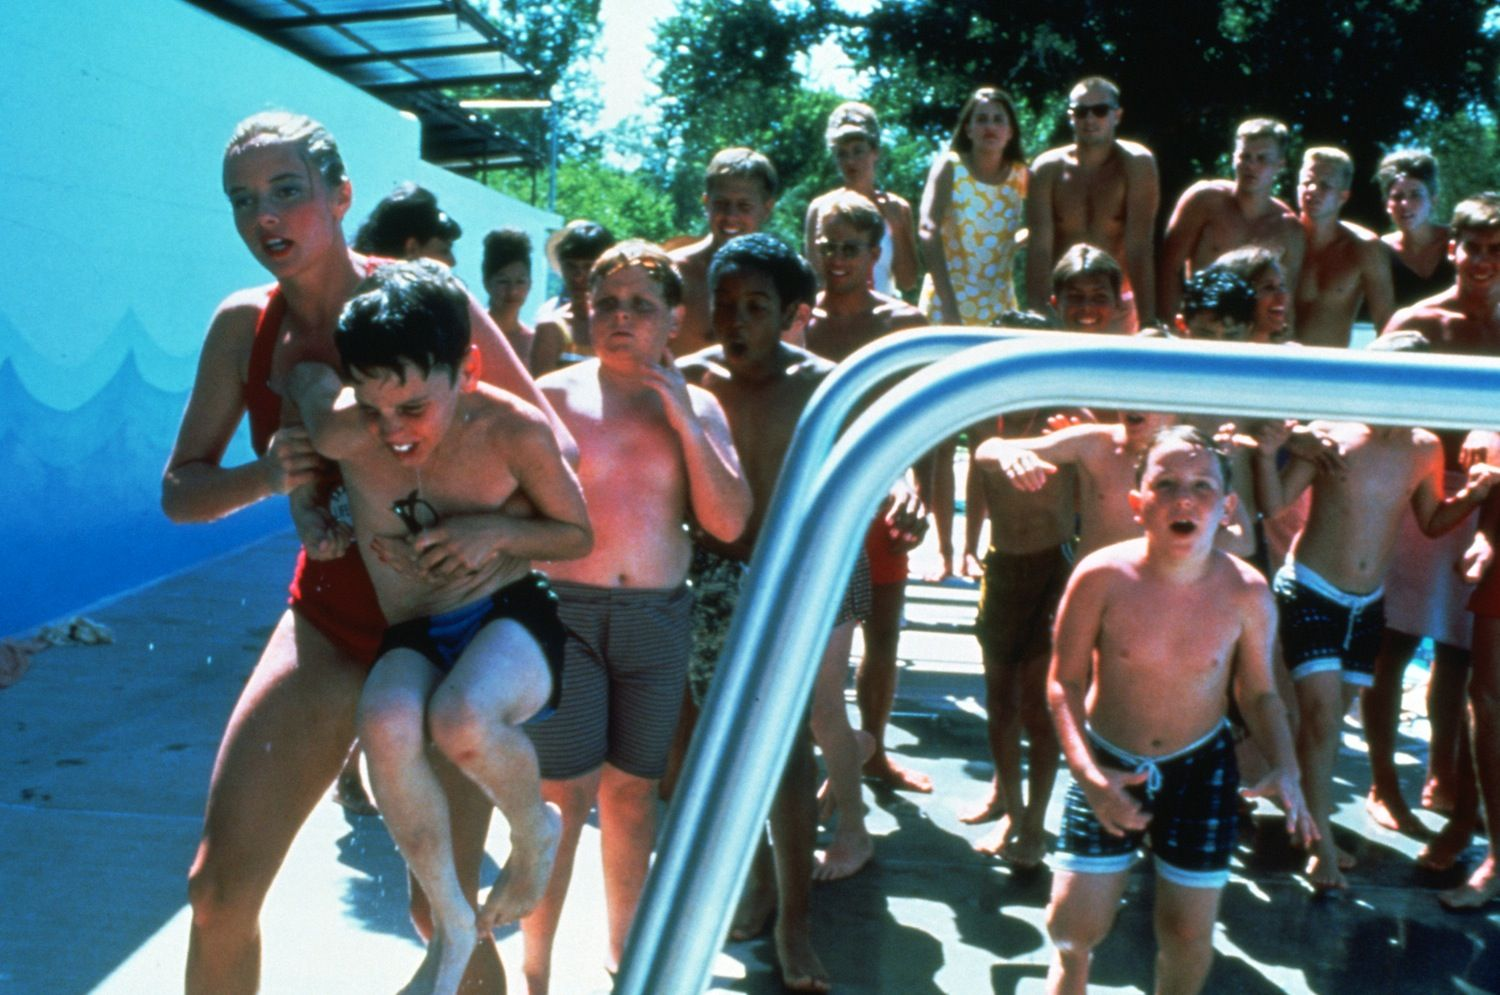 20 Things We Learned About The Sandlot After Talking With